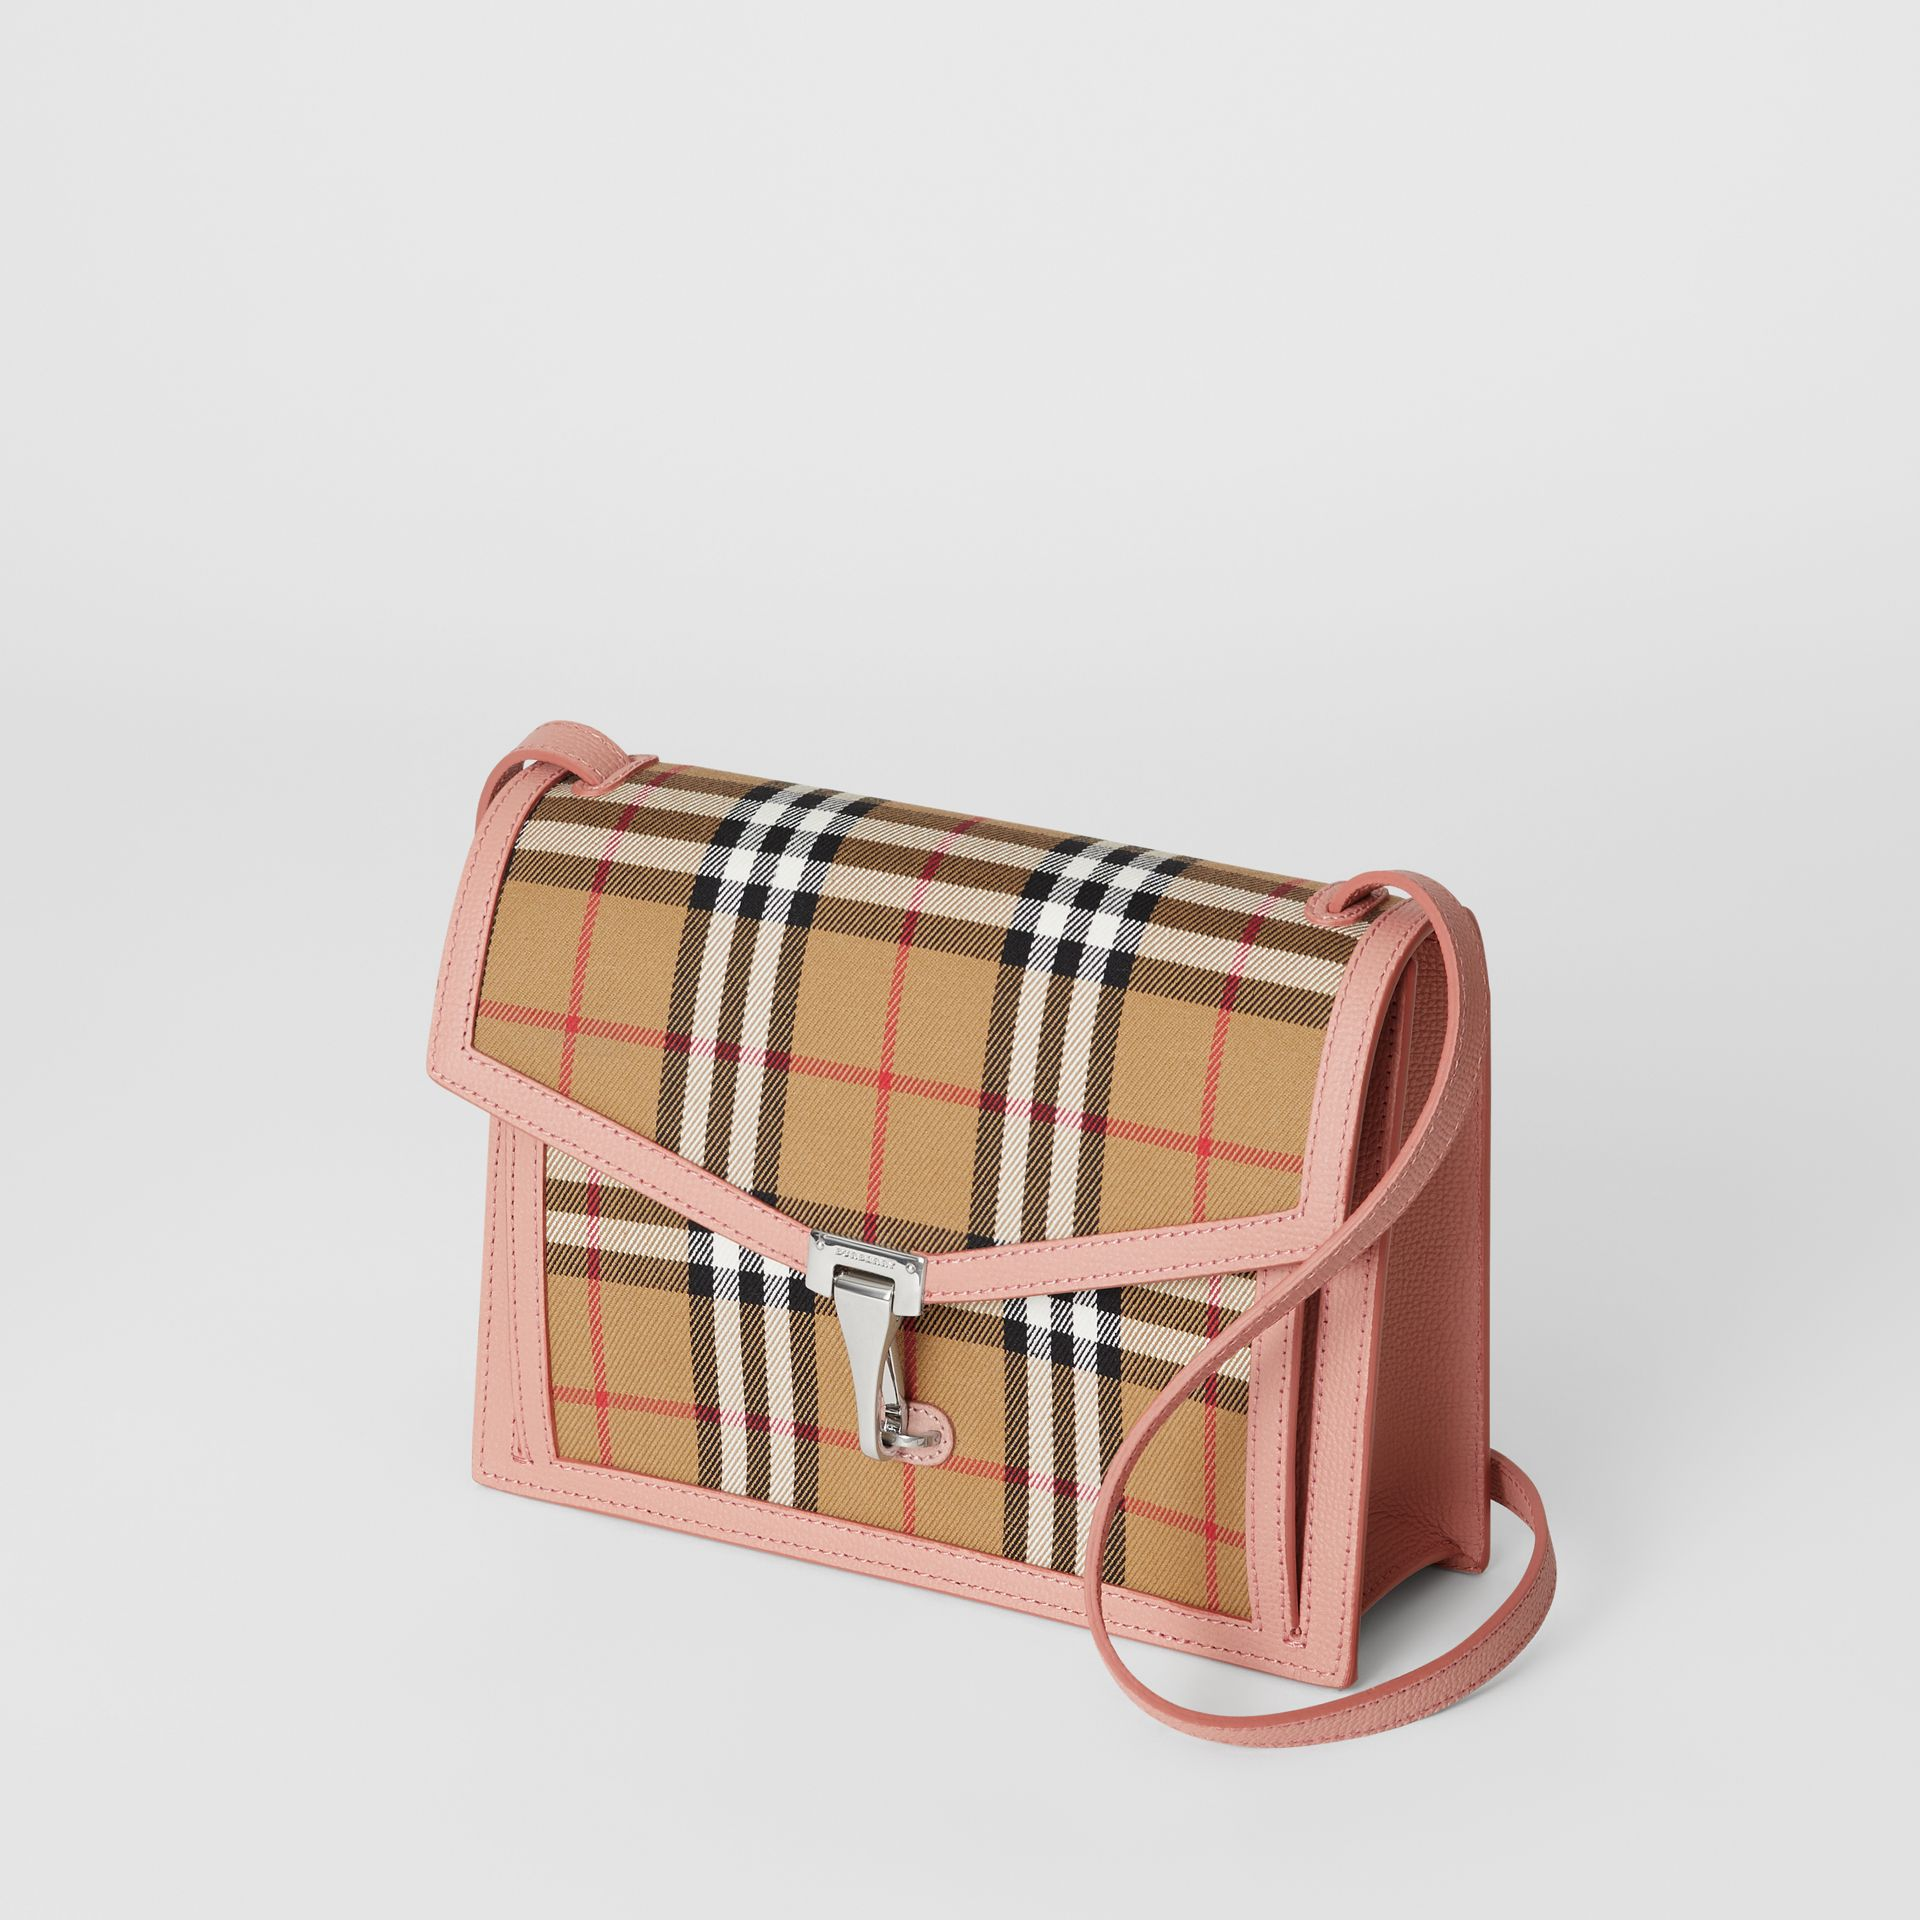 Small Vintage Check and Leather Crossbody Bag in Ash Rose - Women | Burberry United States - gallery image 4